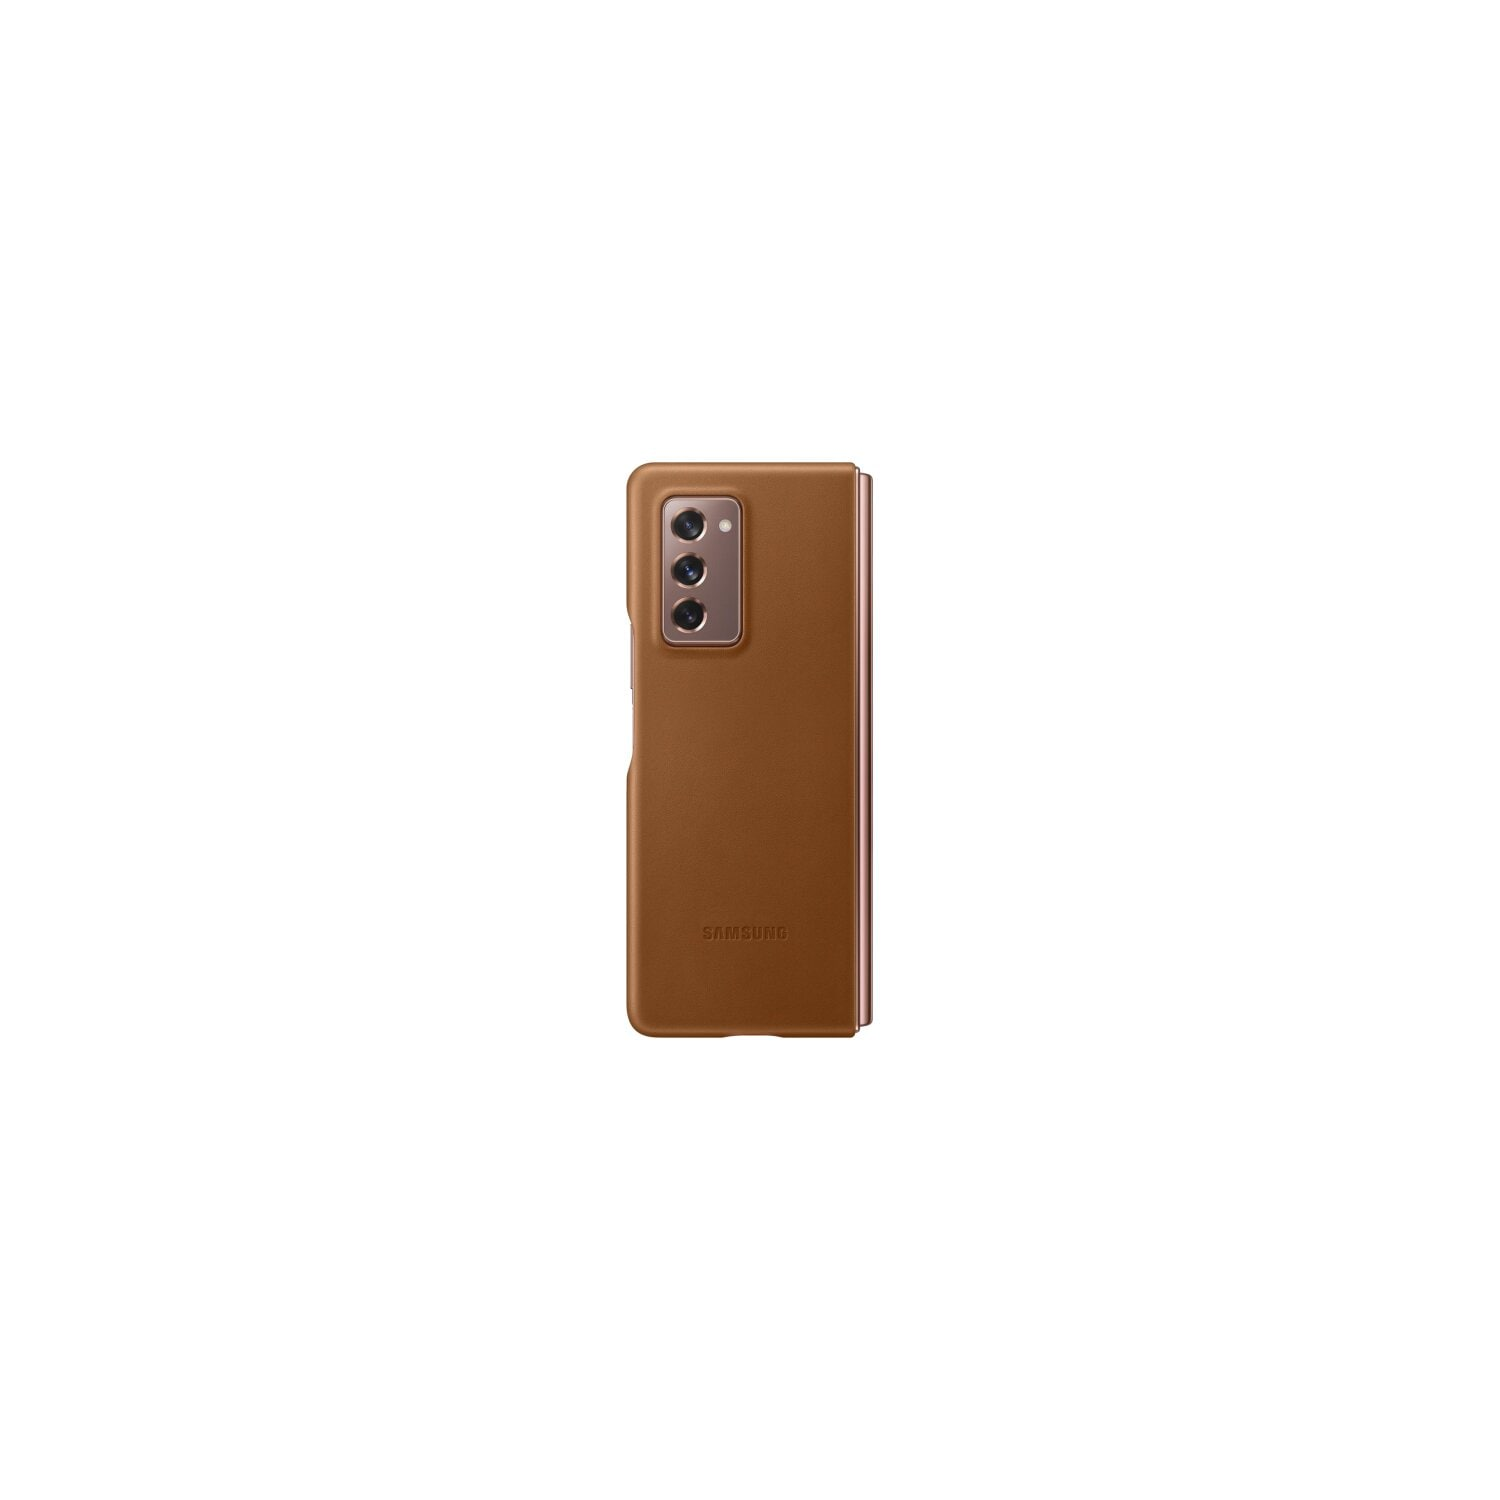 Etui SAMSUNG Leather Cover do Galaxy Z Fold2 5G Brązowy EF-VF916LAEGEU